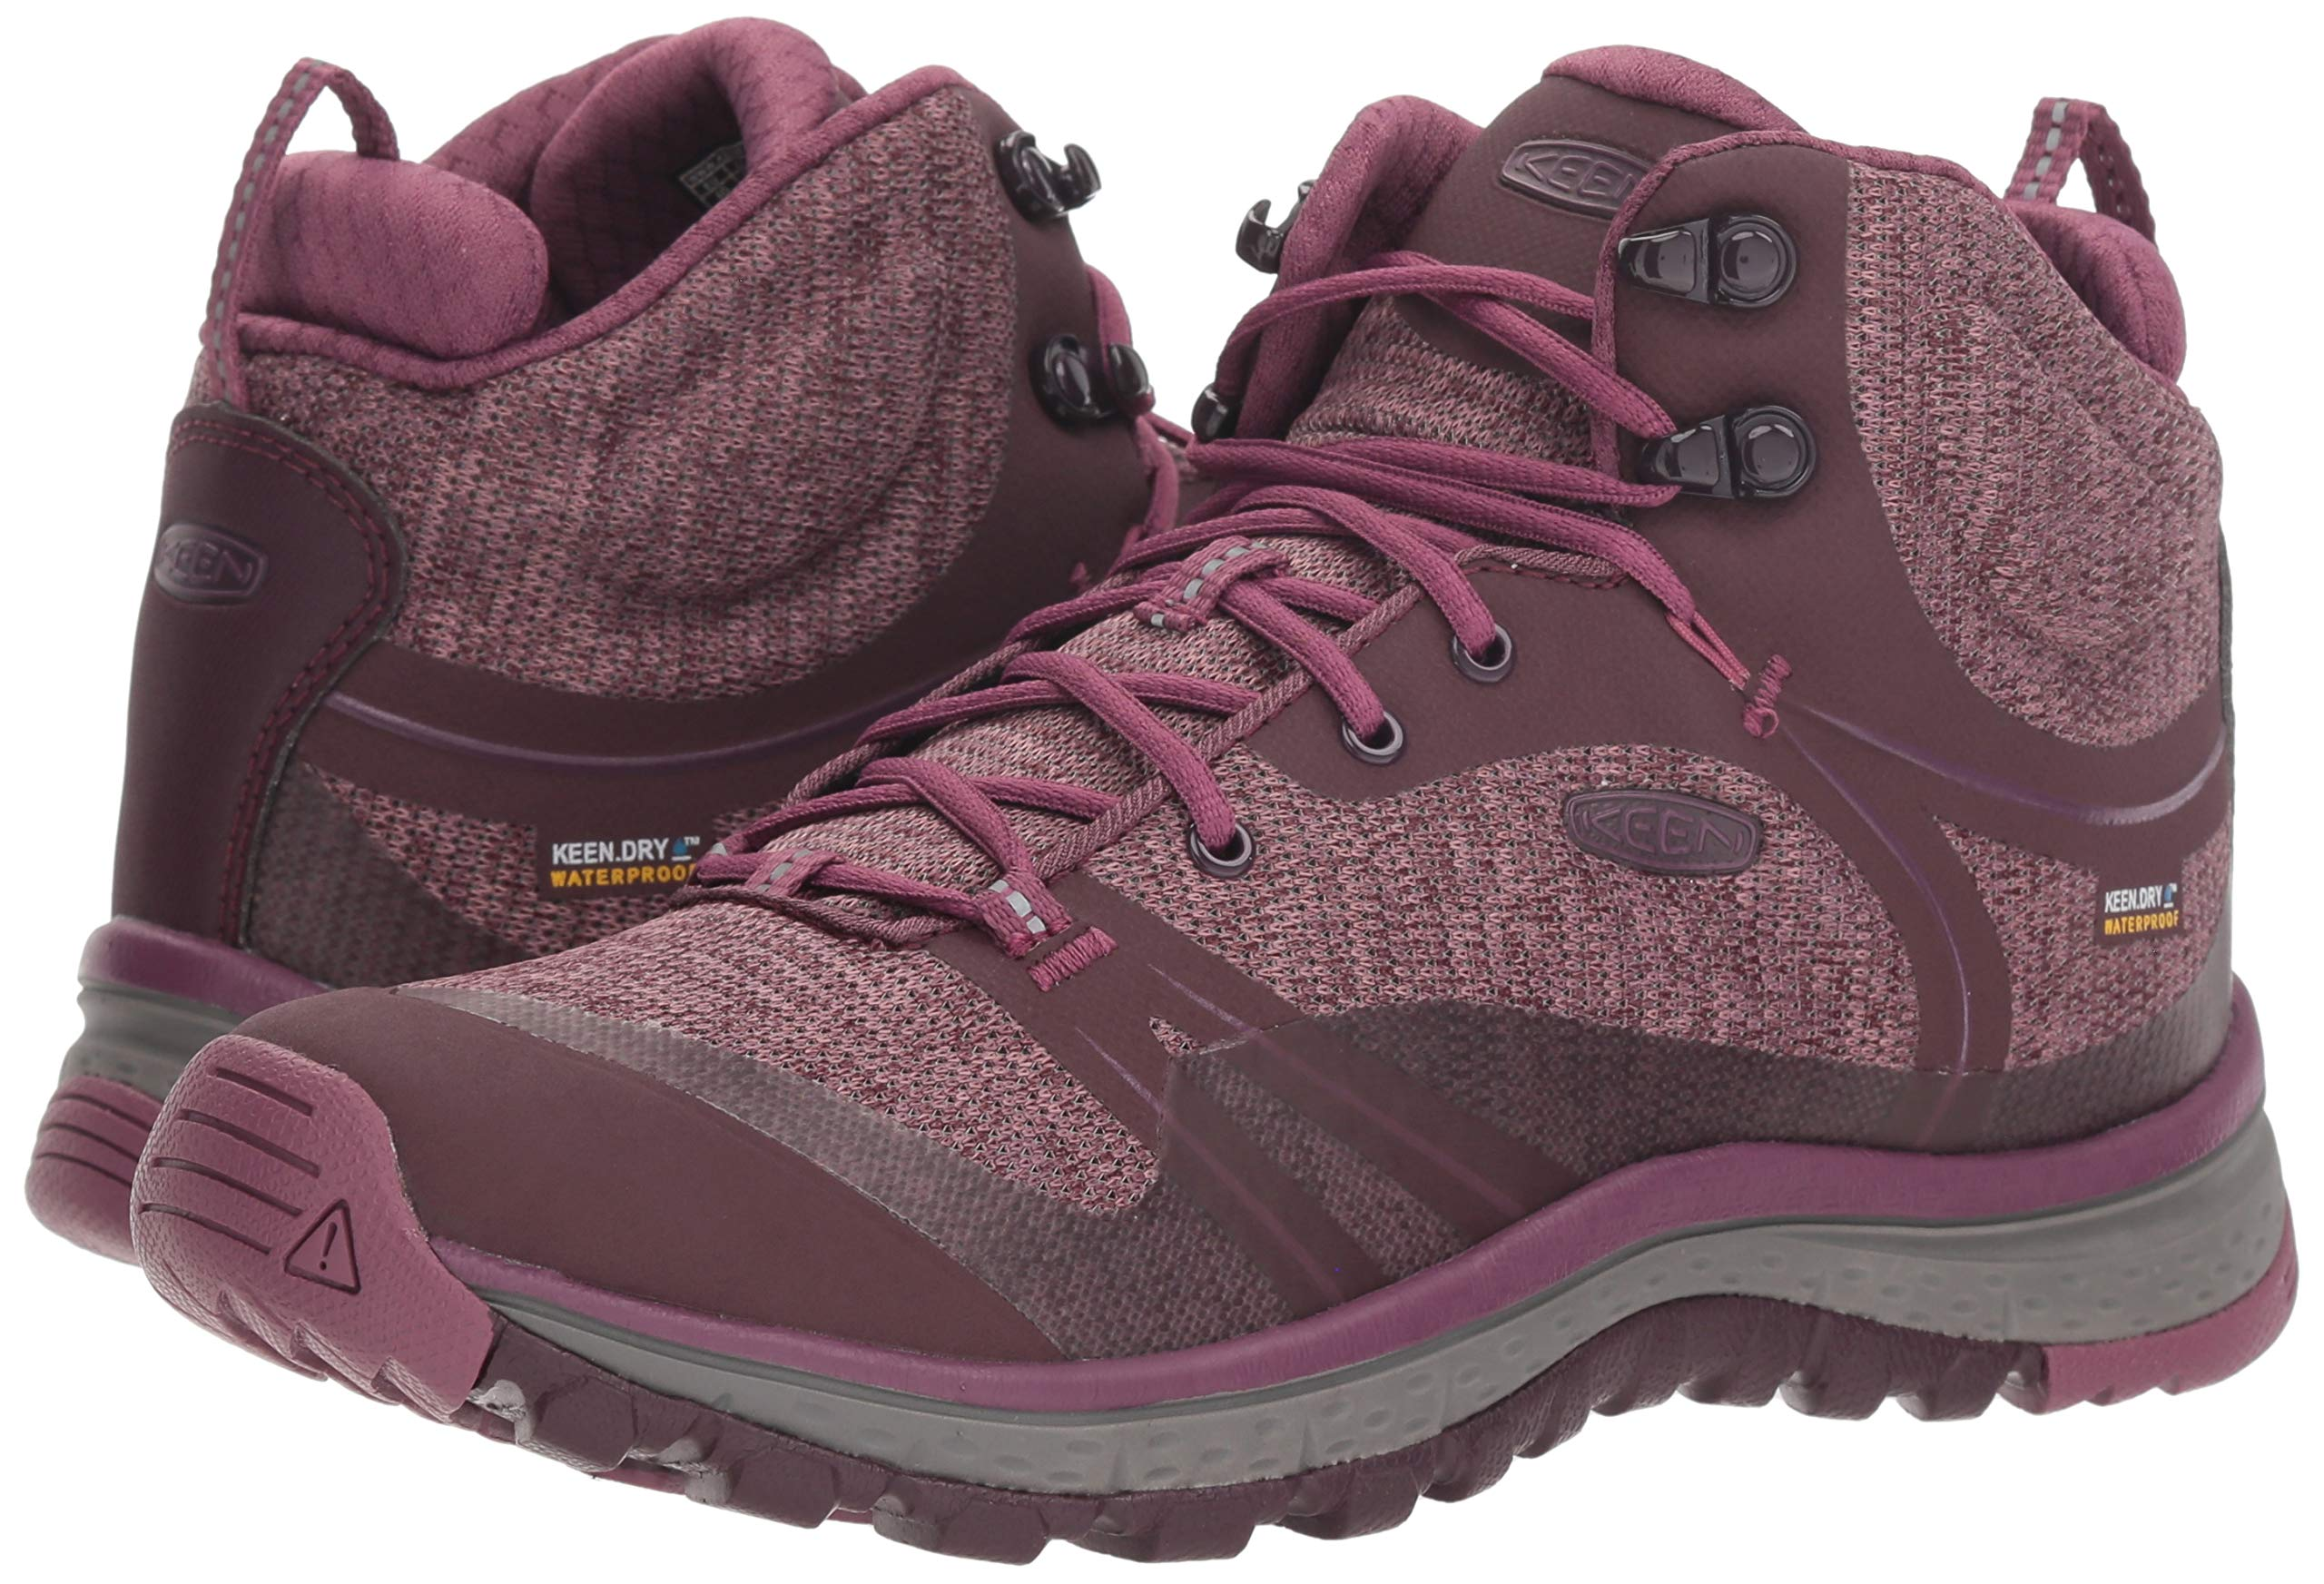 6126fb298d2 KEEN Women's Terradora Mid Wp High Rise Hiking Shoes - UKsportsOutdoors